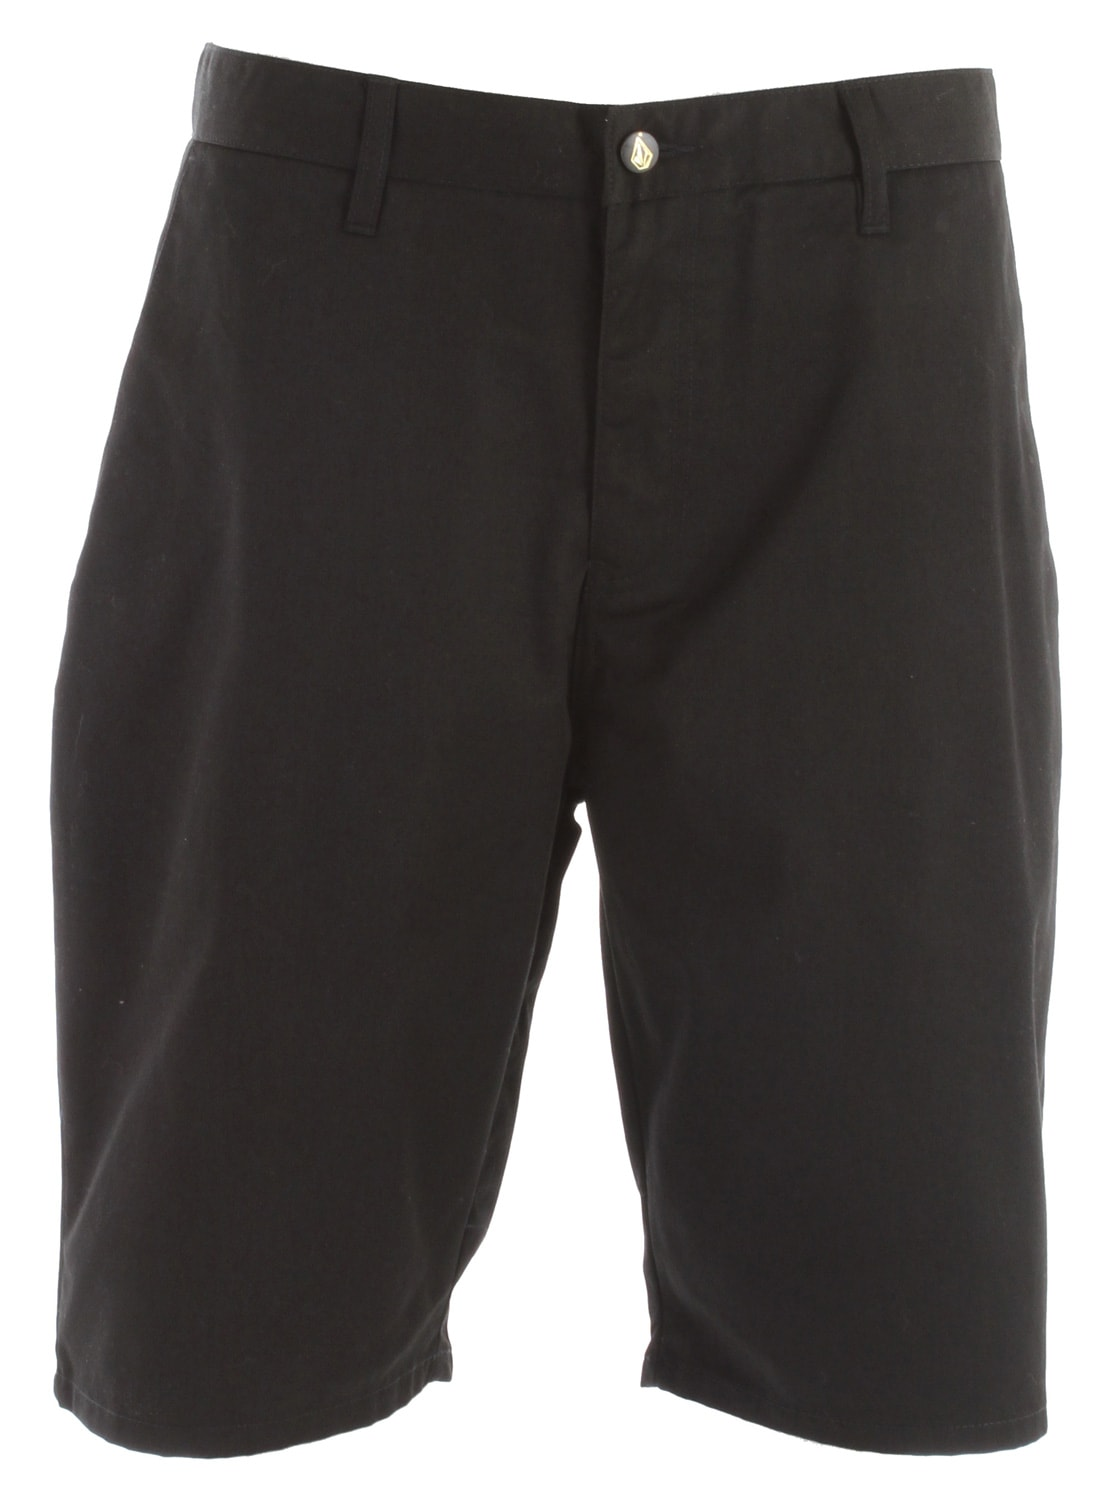 Shop for Volcom Frickin Modern Shorts Black - Men's